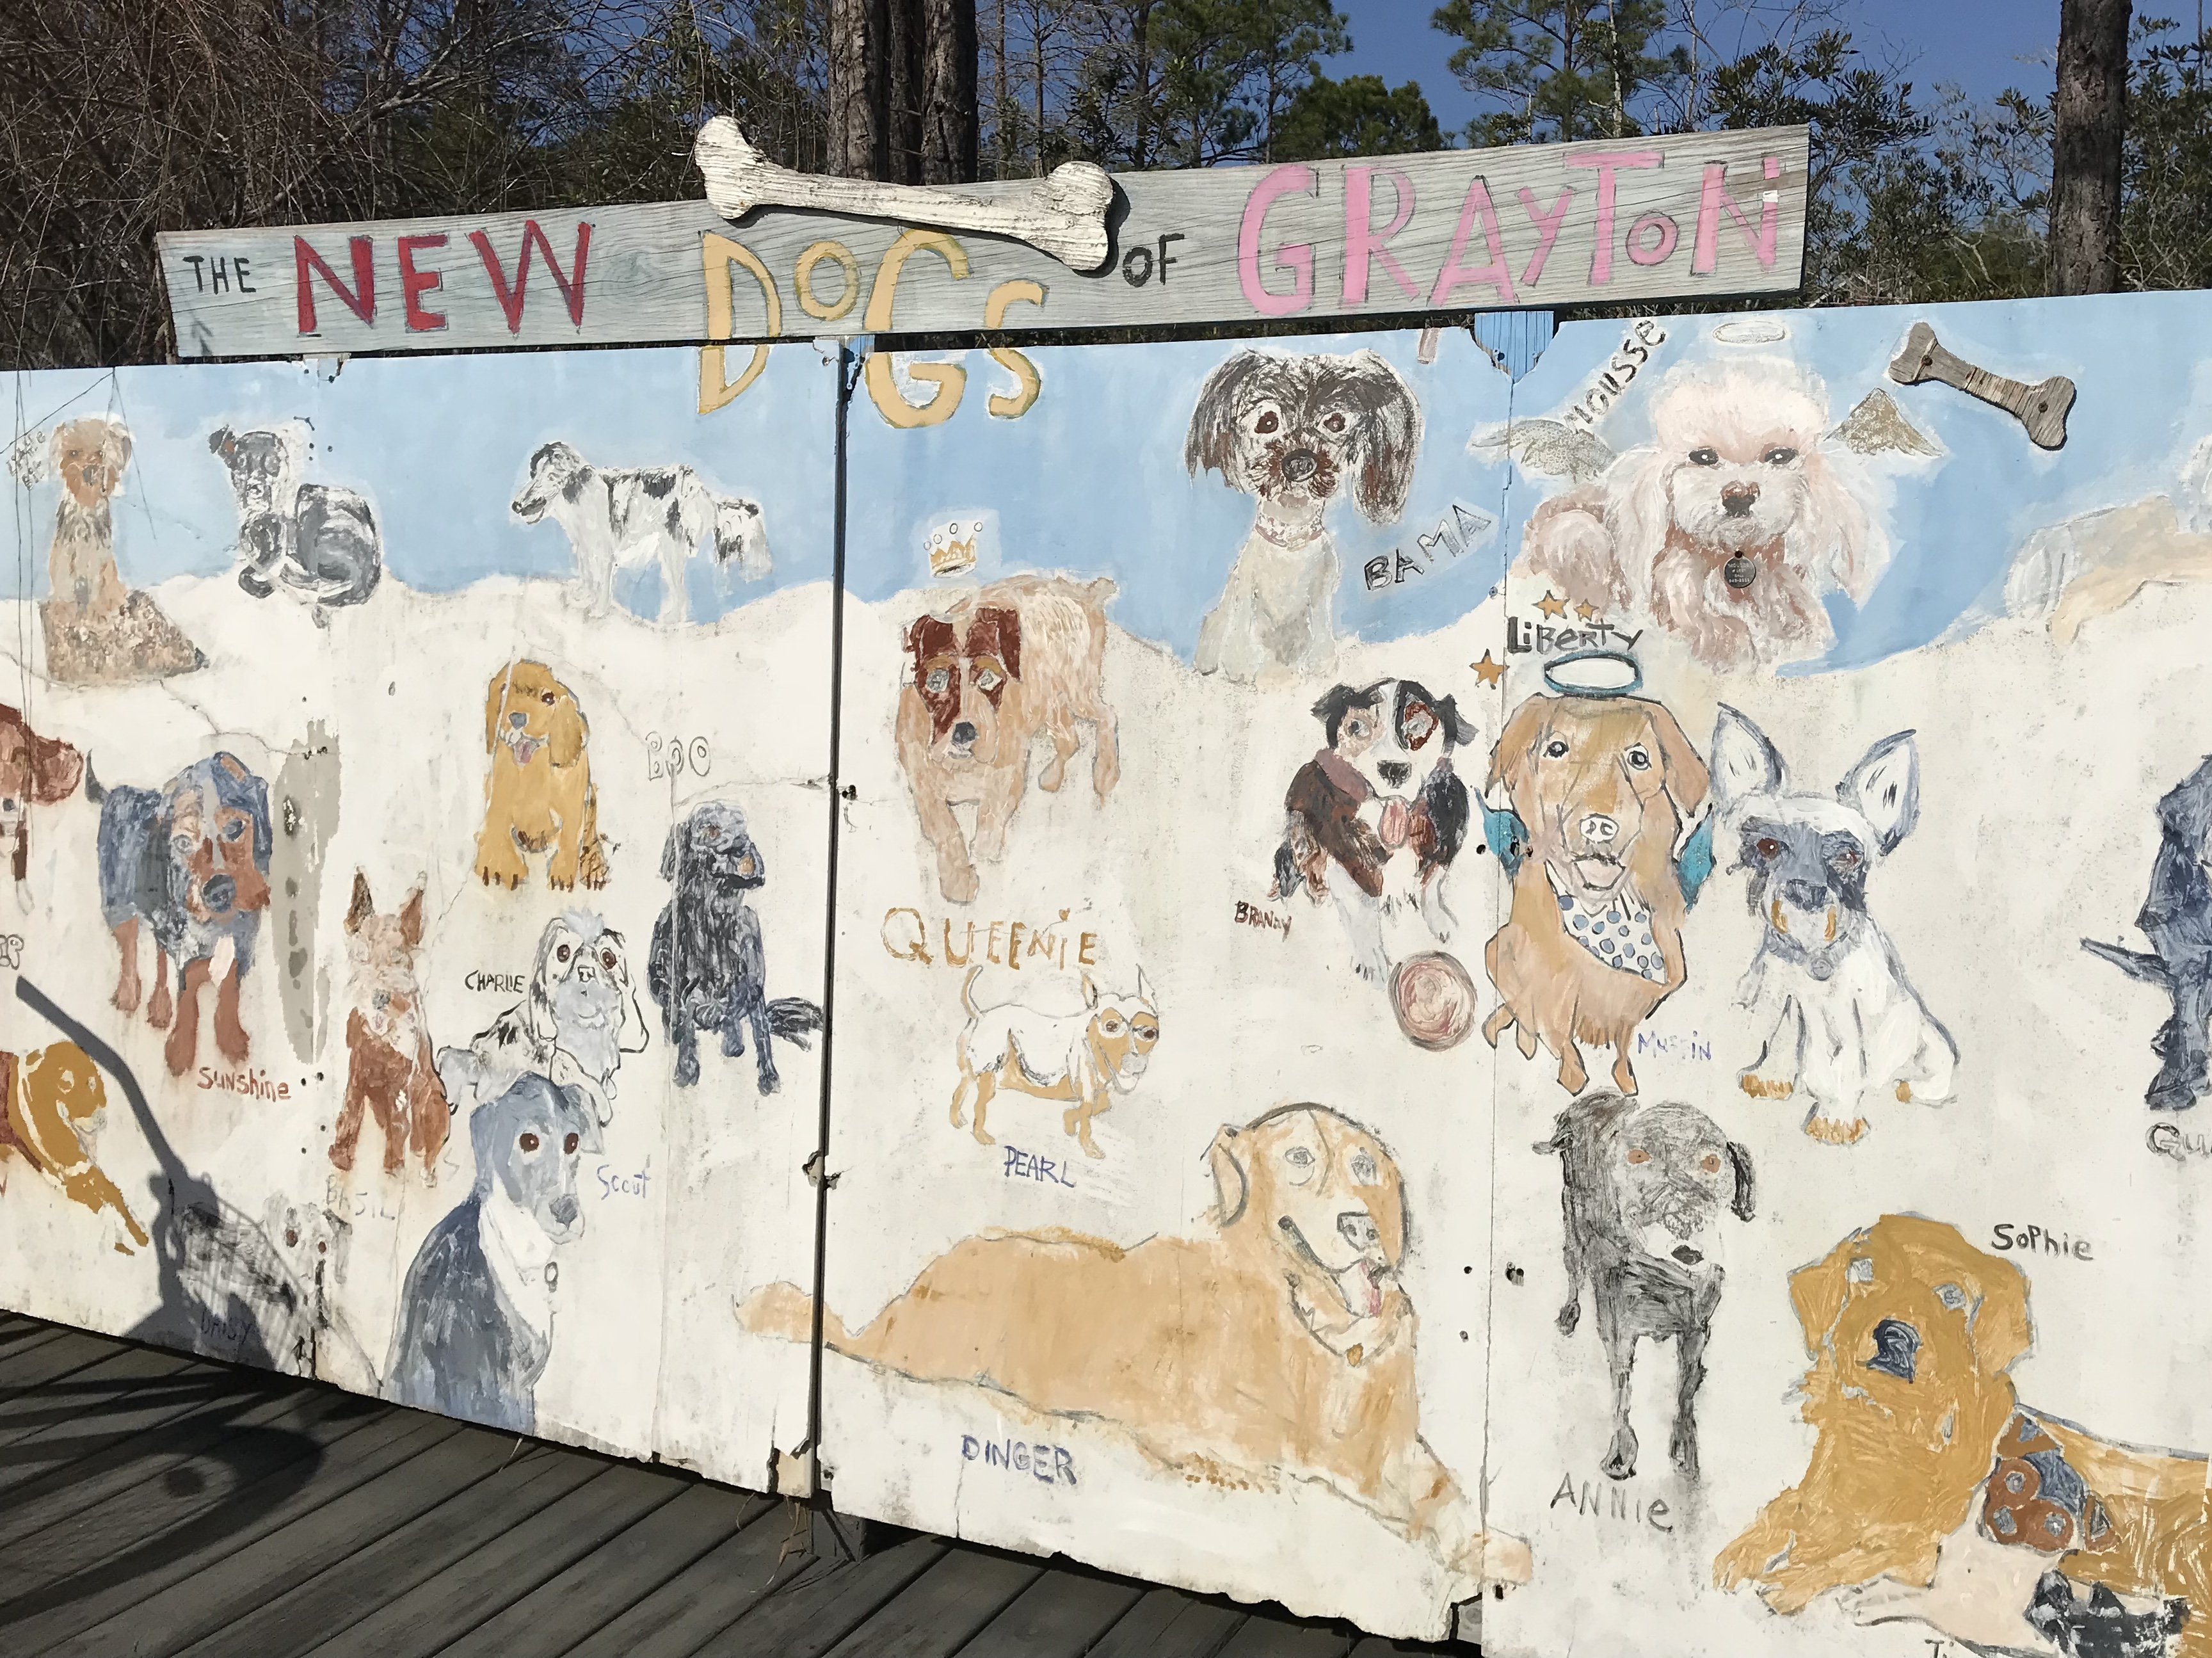 New Dogs of Grayton mural features locally owned dogs